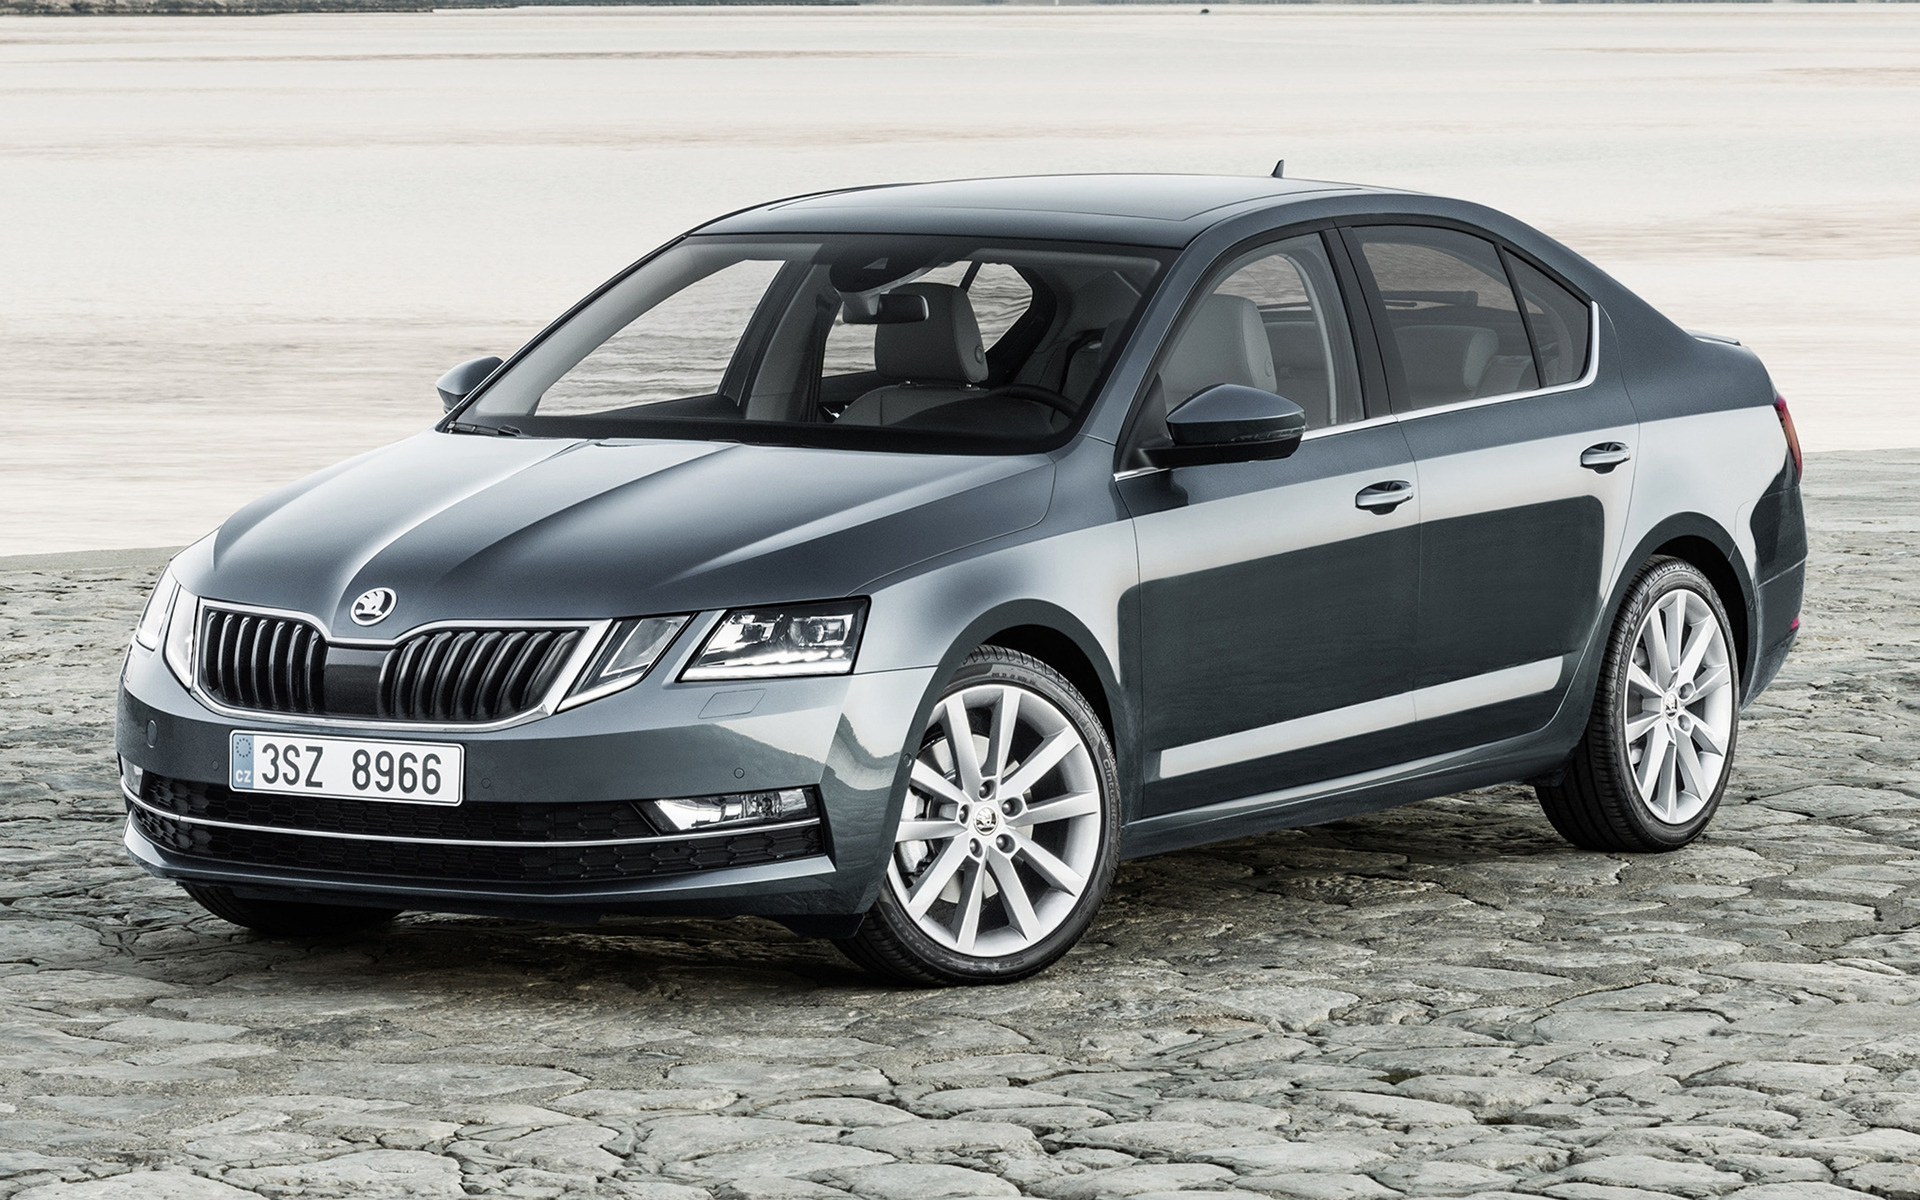 2017 Skoda Octavia Wallpapers And Hd Images Car Pixel